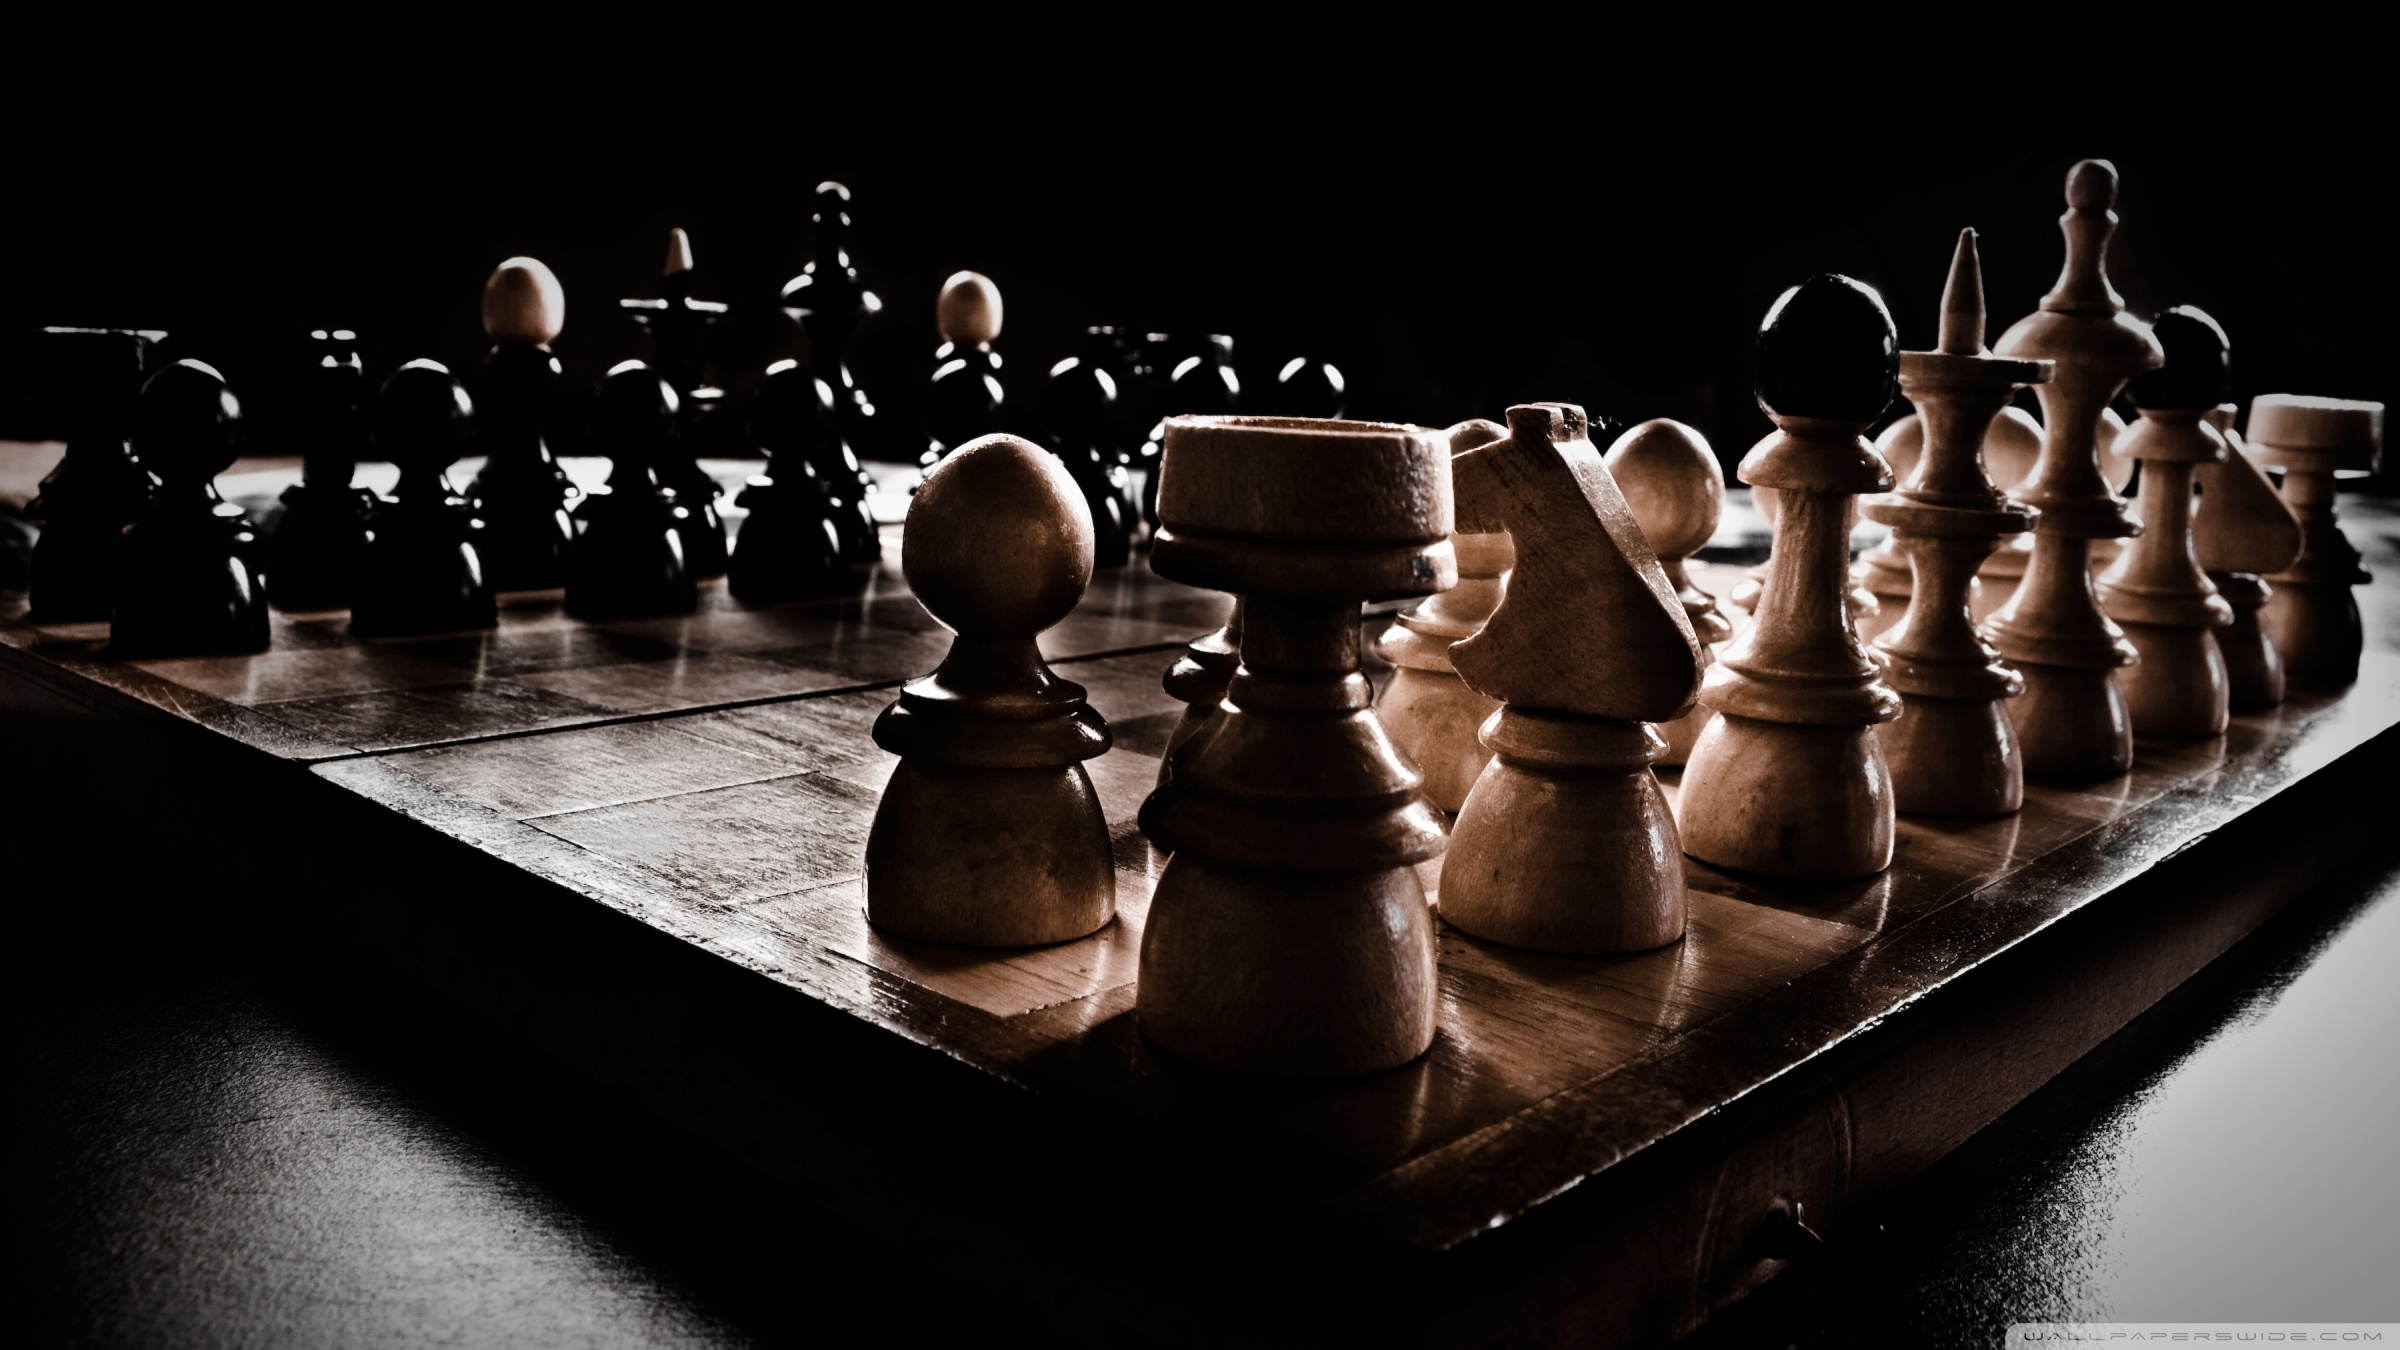 HD Chess Wallpaper